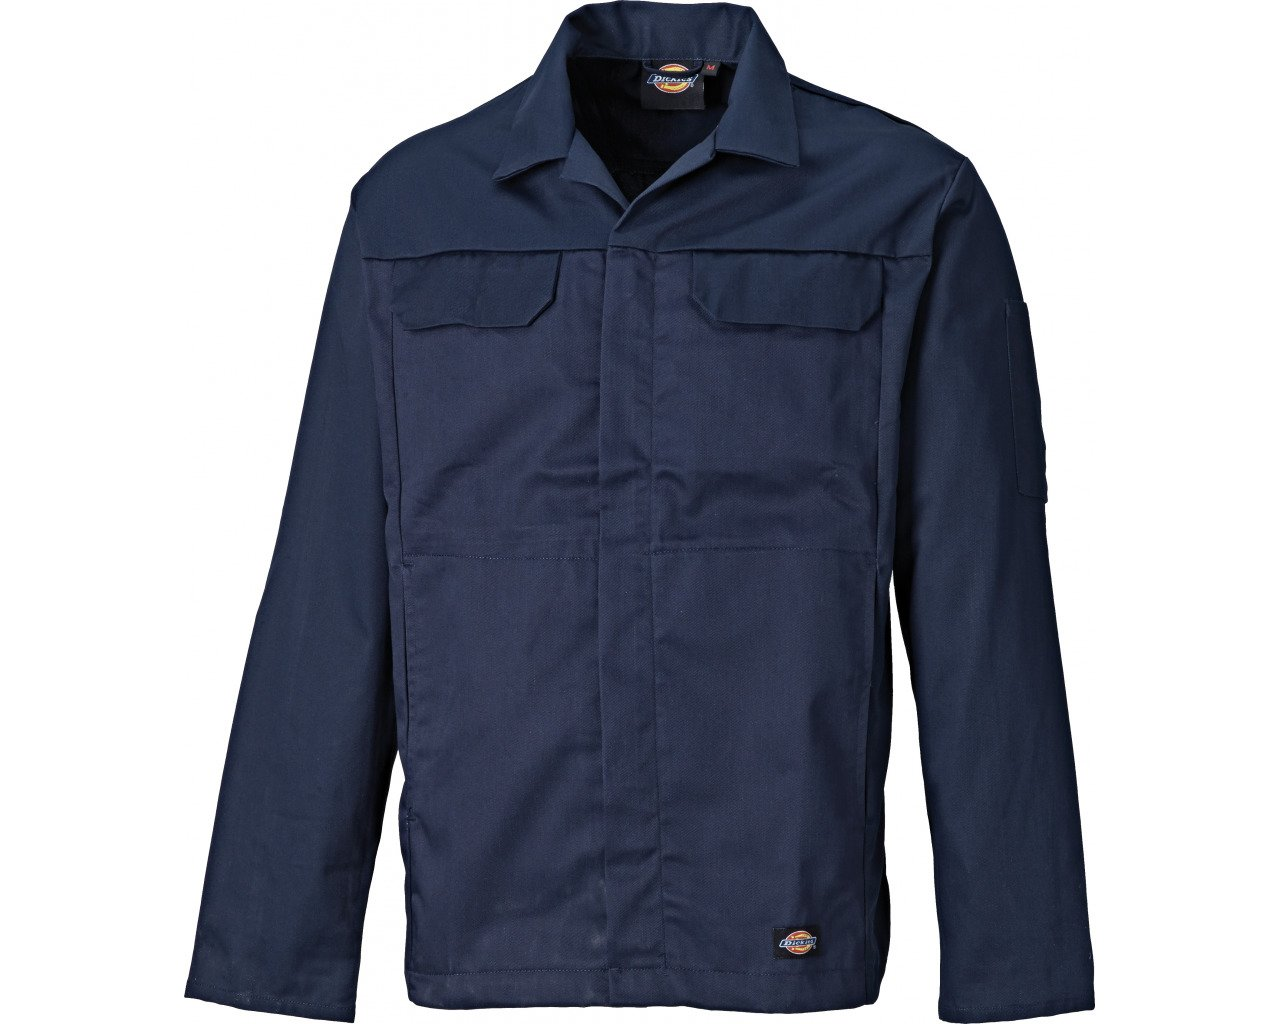 Dickies WD954-NB-XXL Red hawk Jacket, 2X-Large, Navy Blue